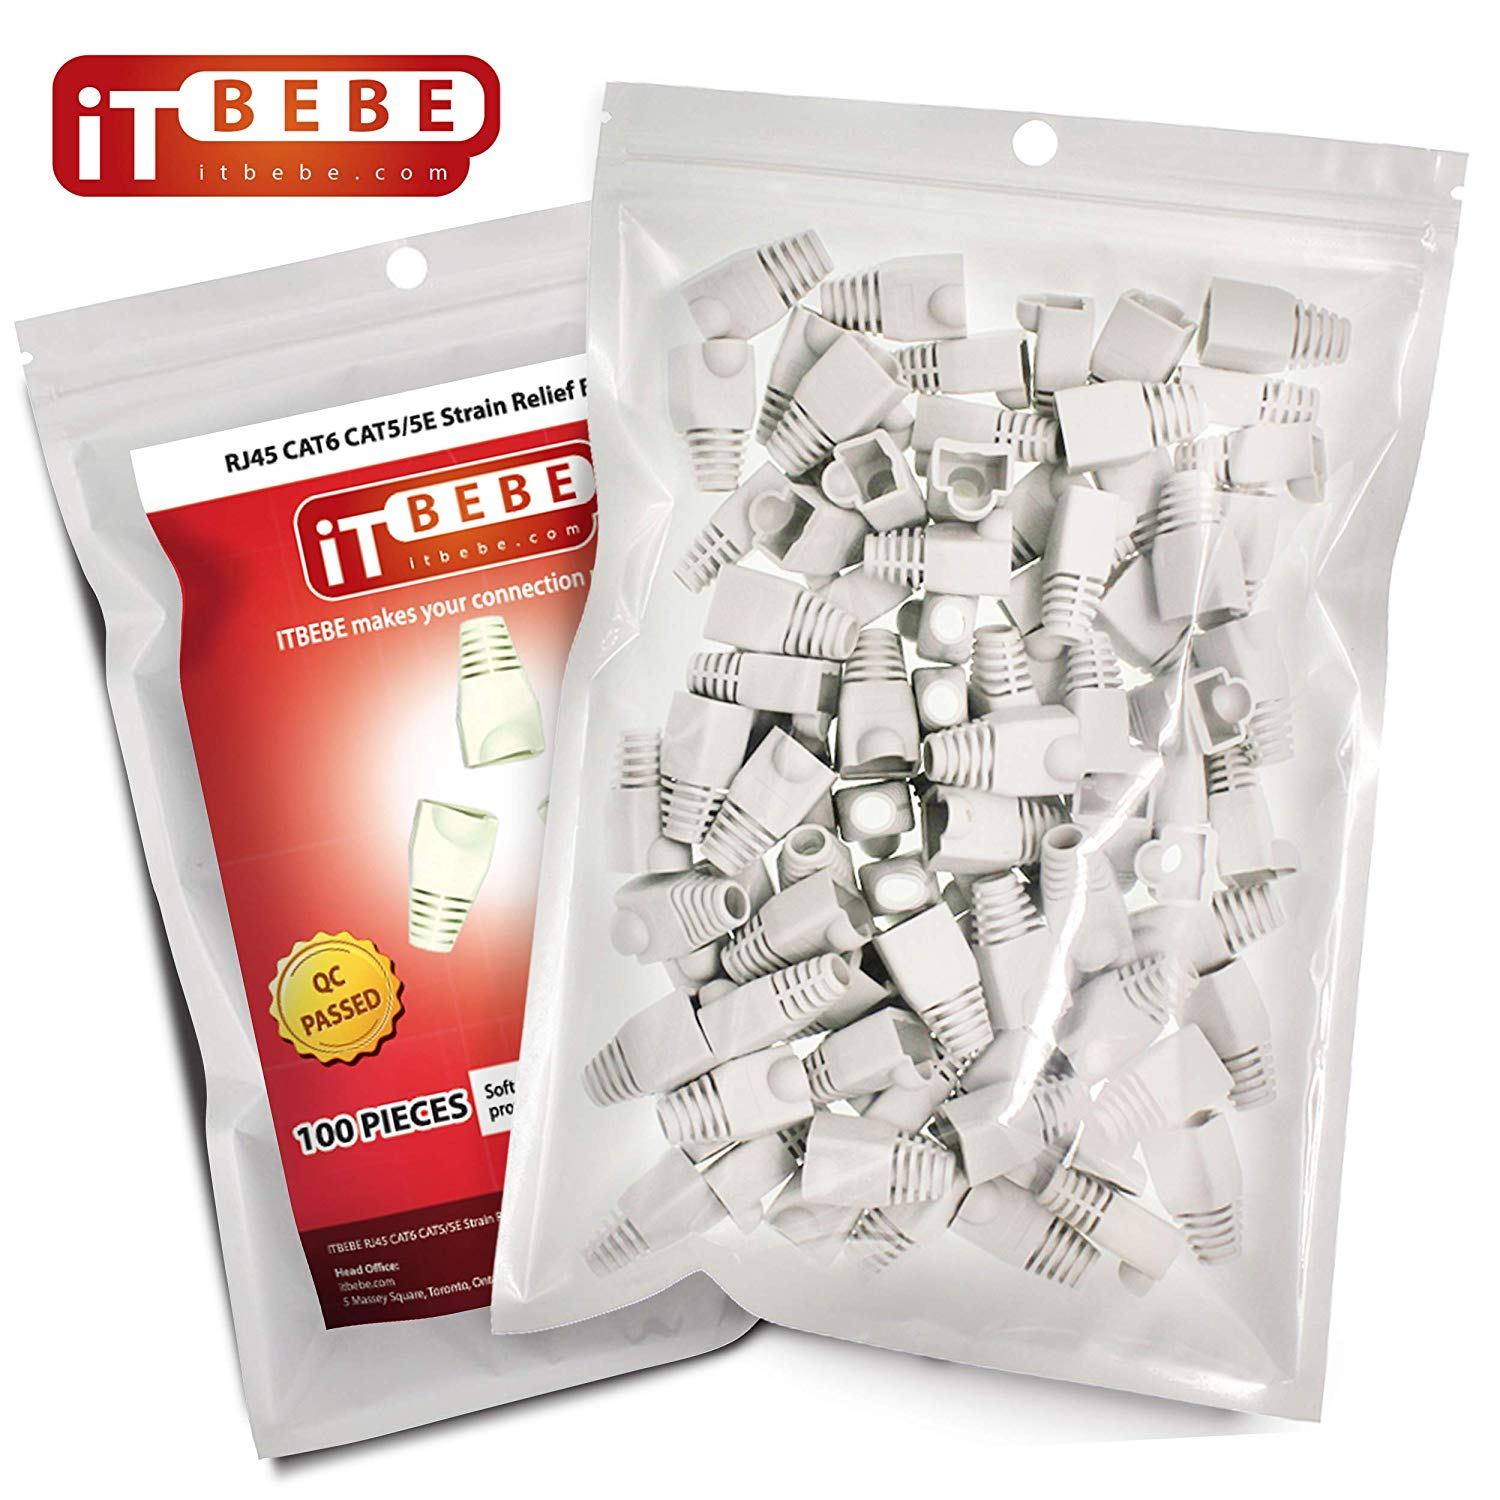 RJ45 Strain Relief Boot Covers 100-Count Set for Cat5 Cat5e, Cat6 and Cat6A Ethernet Connectors (White)